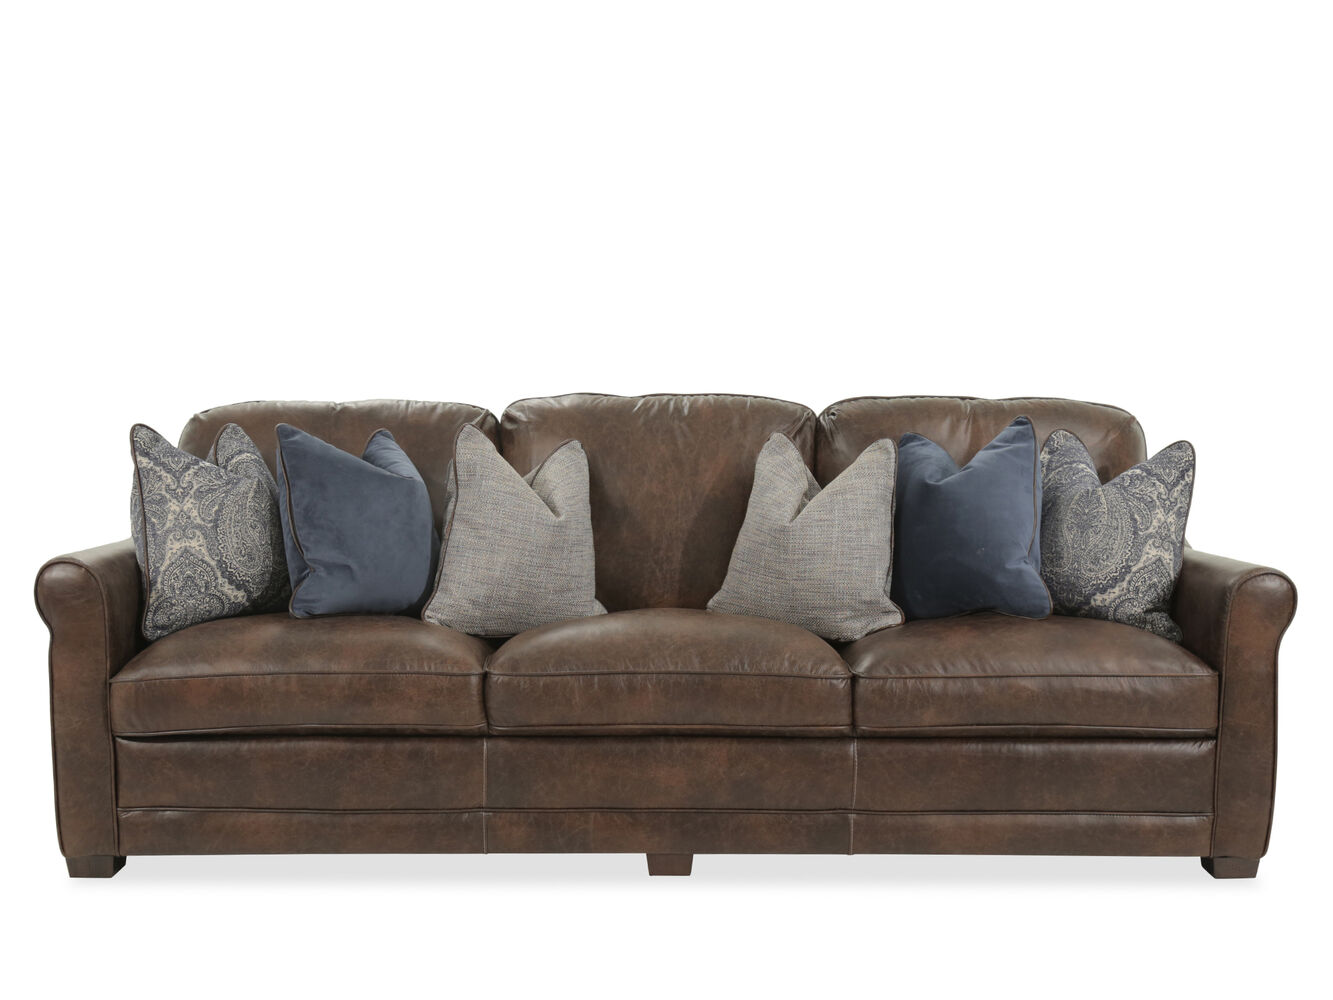 Leather casual 101 sofa in coffee mathis brothers furniture for Casual couch